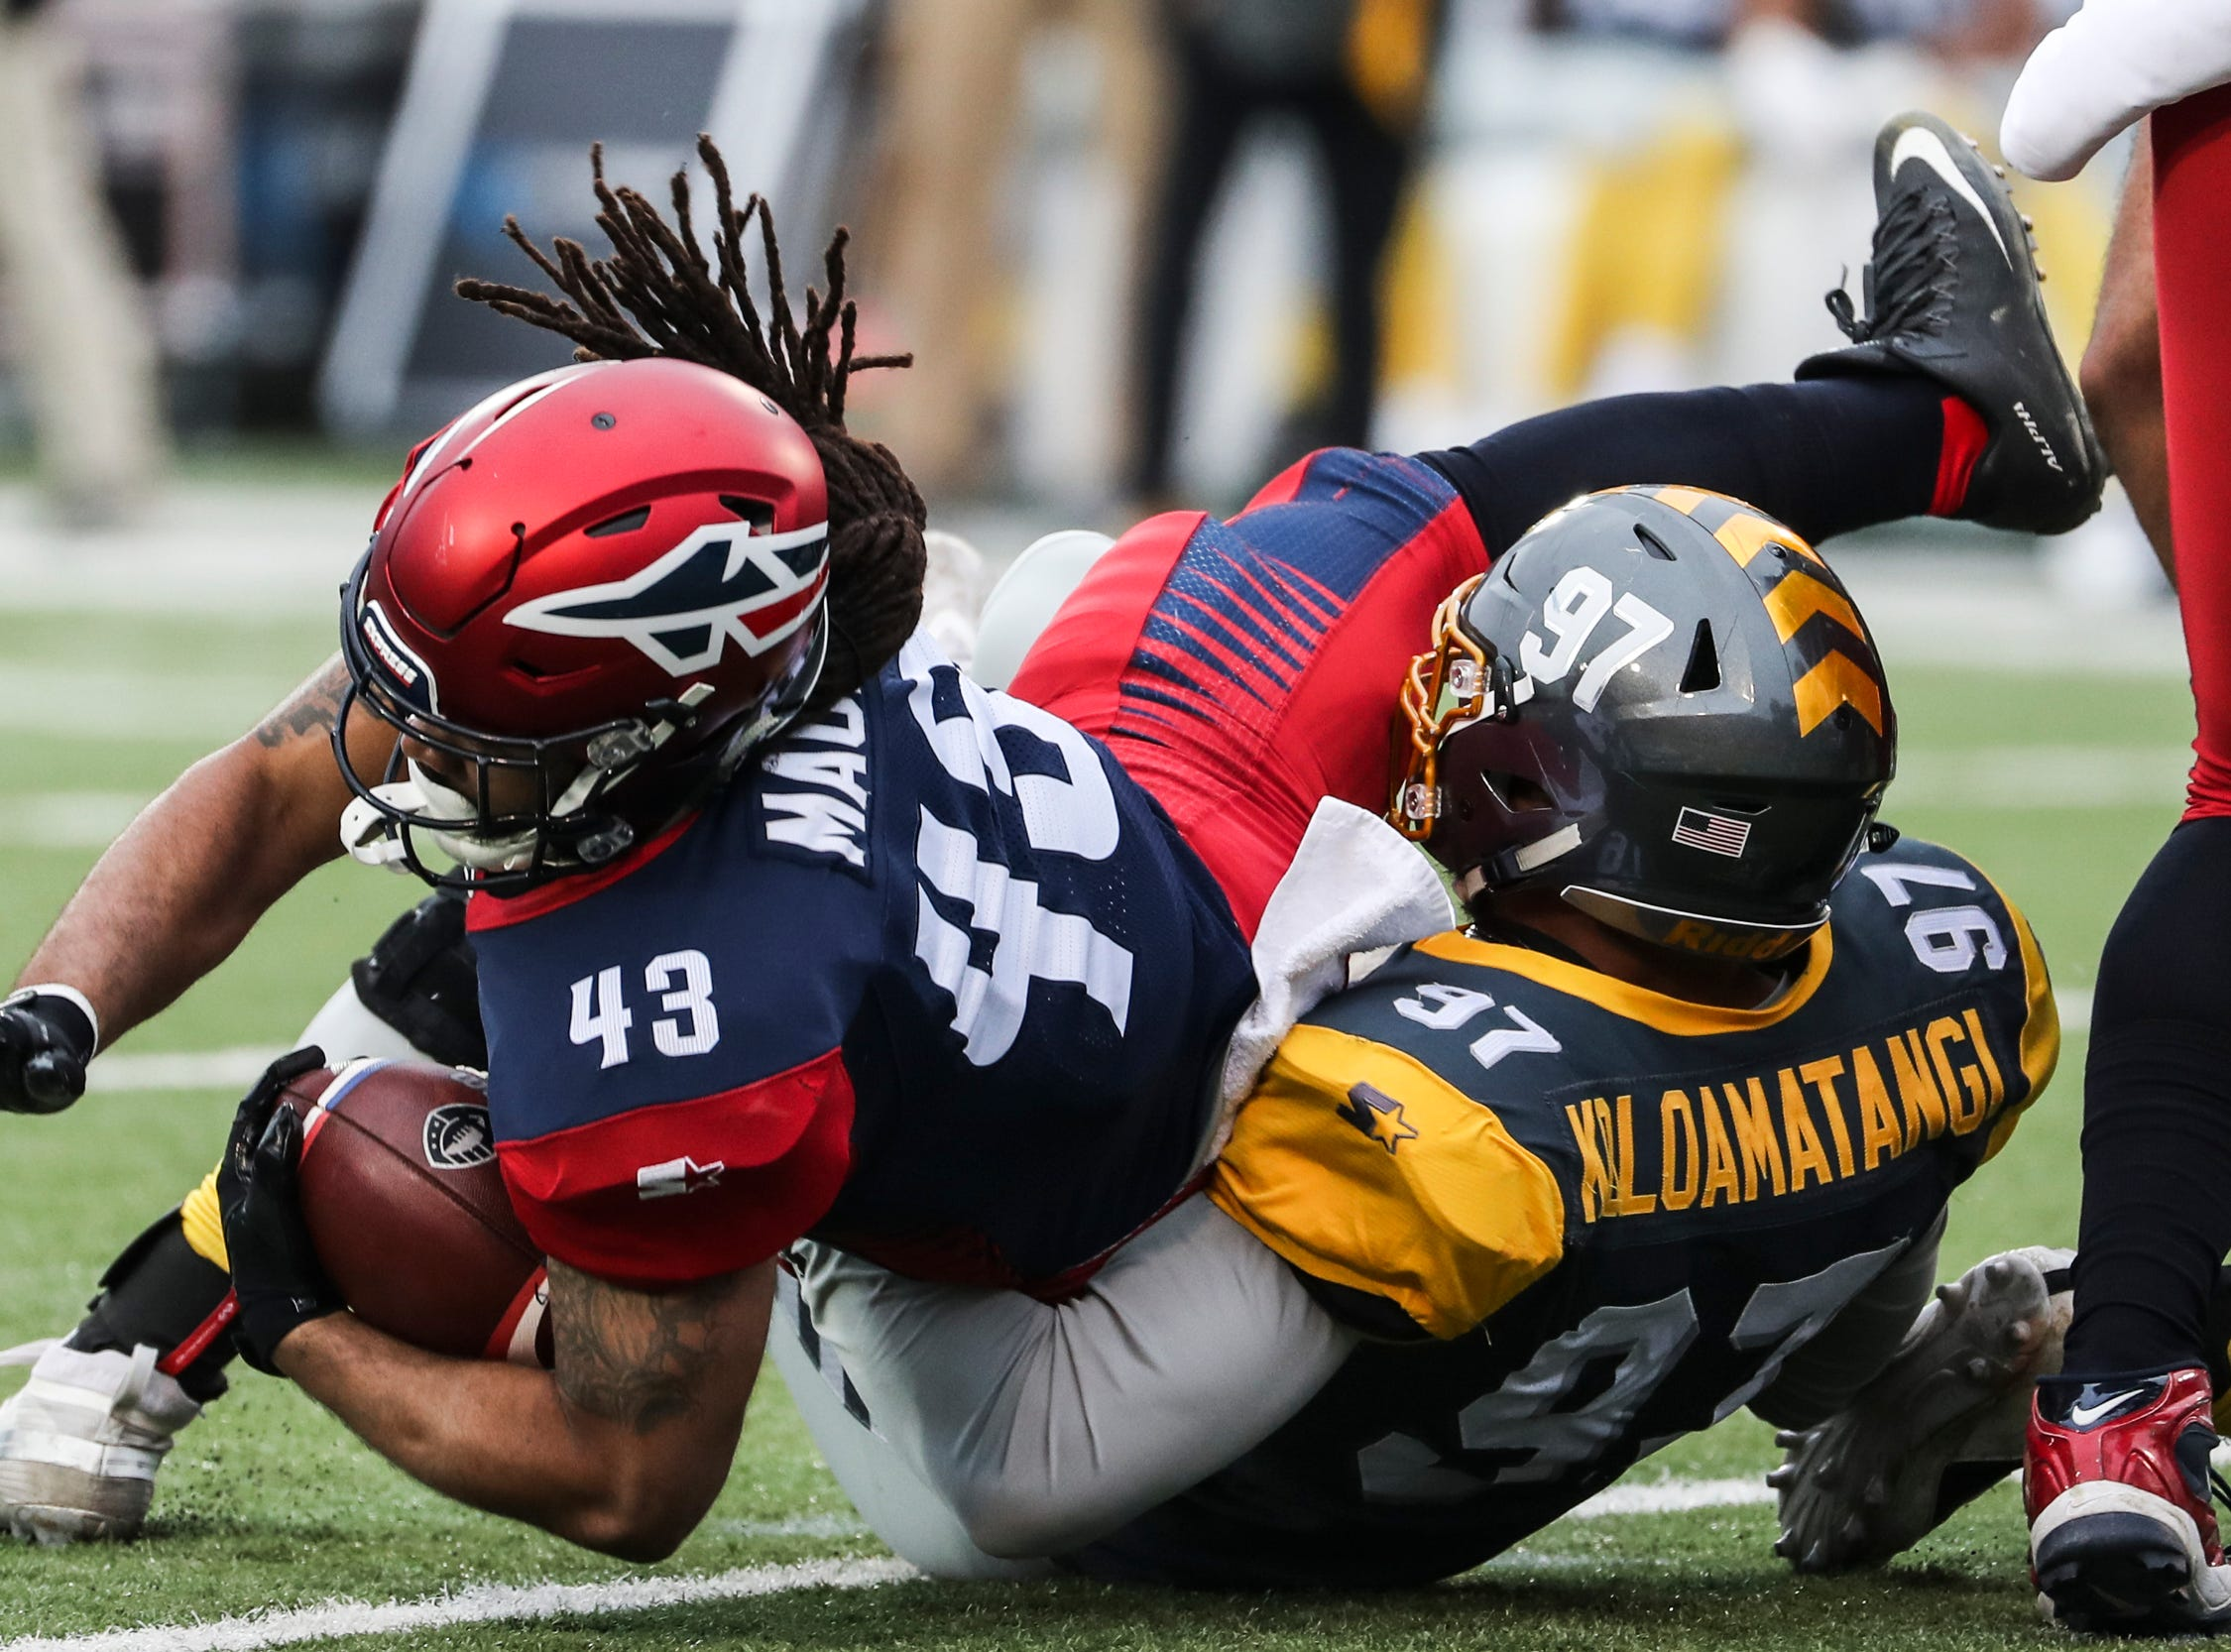 March 02, 2019 - Memphis Express' Terrence Magee is brought down during Saturday's game against the San Diego Fleet.